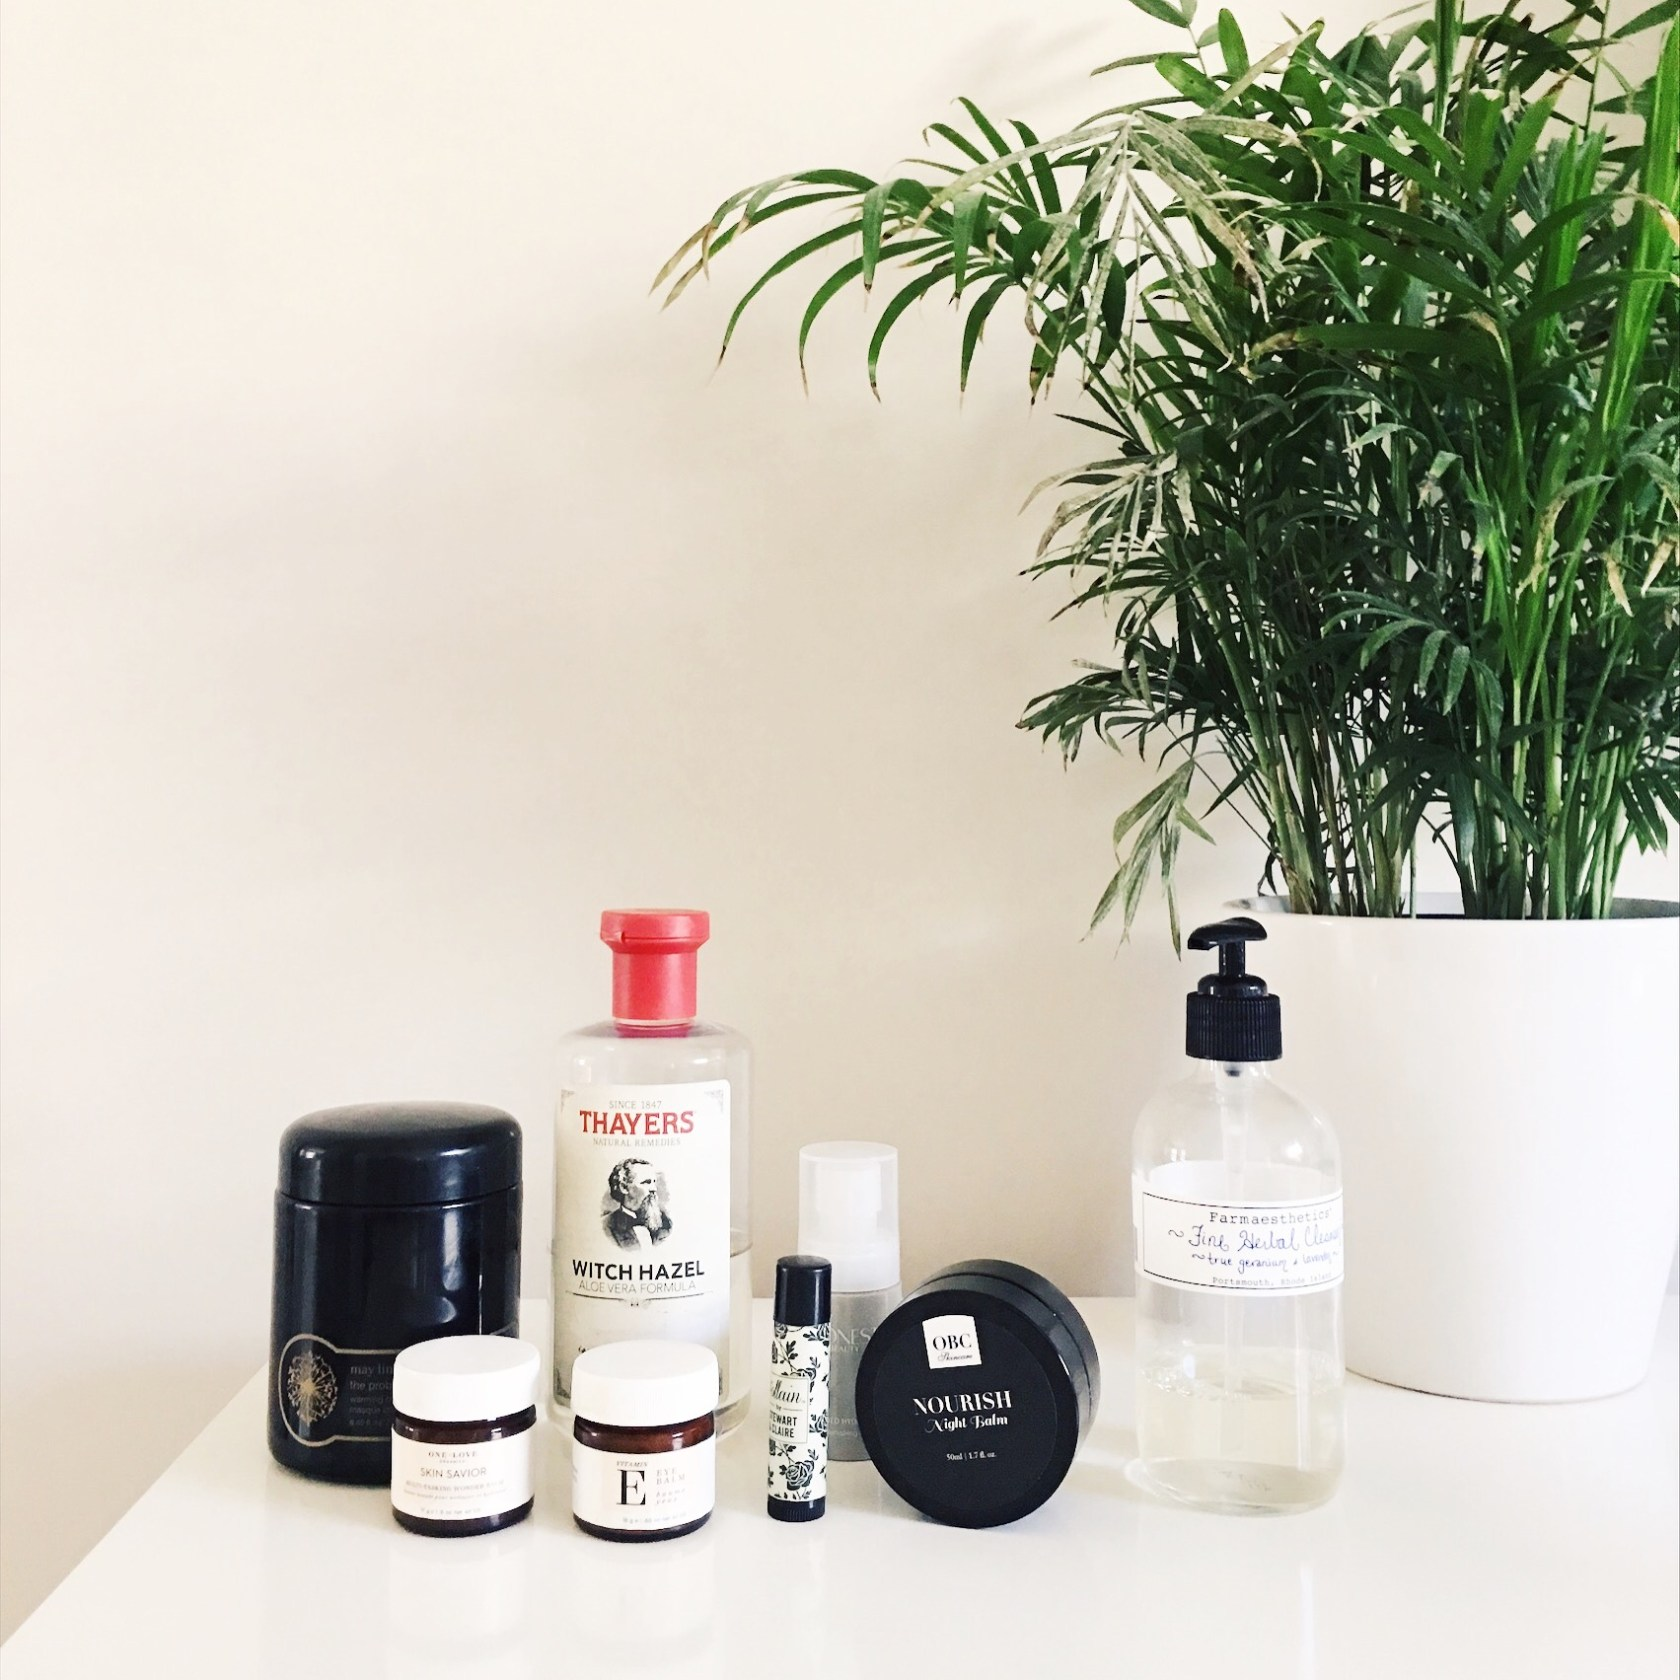 6 STEPS TO A SPA NIGHT AT HOME - Oh, I Design Studio